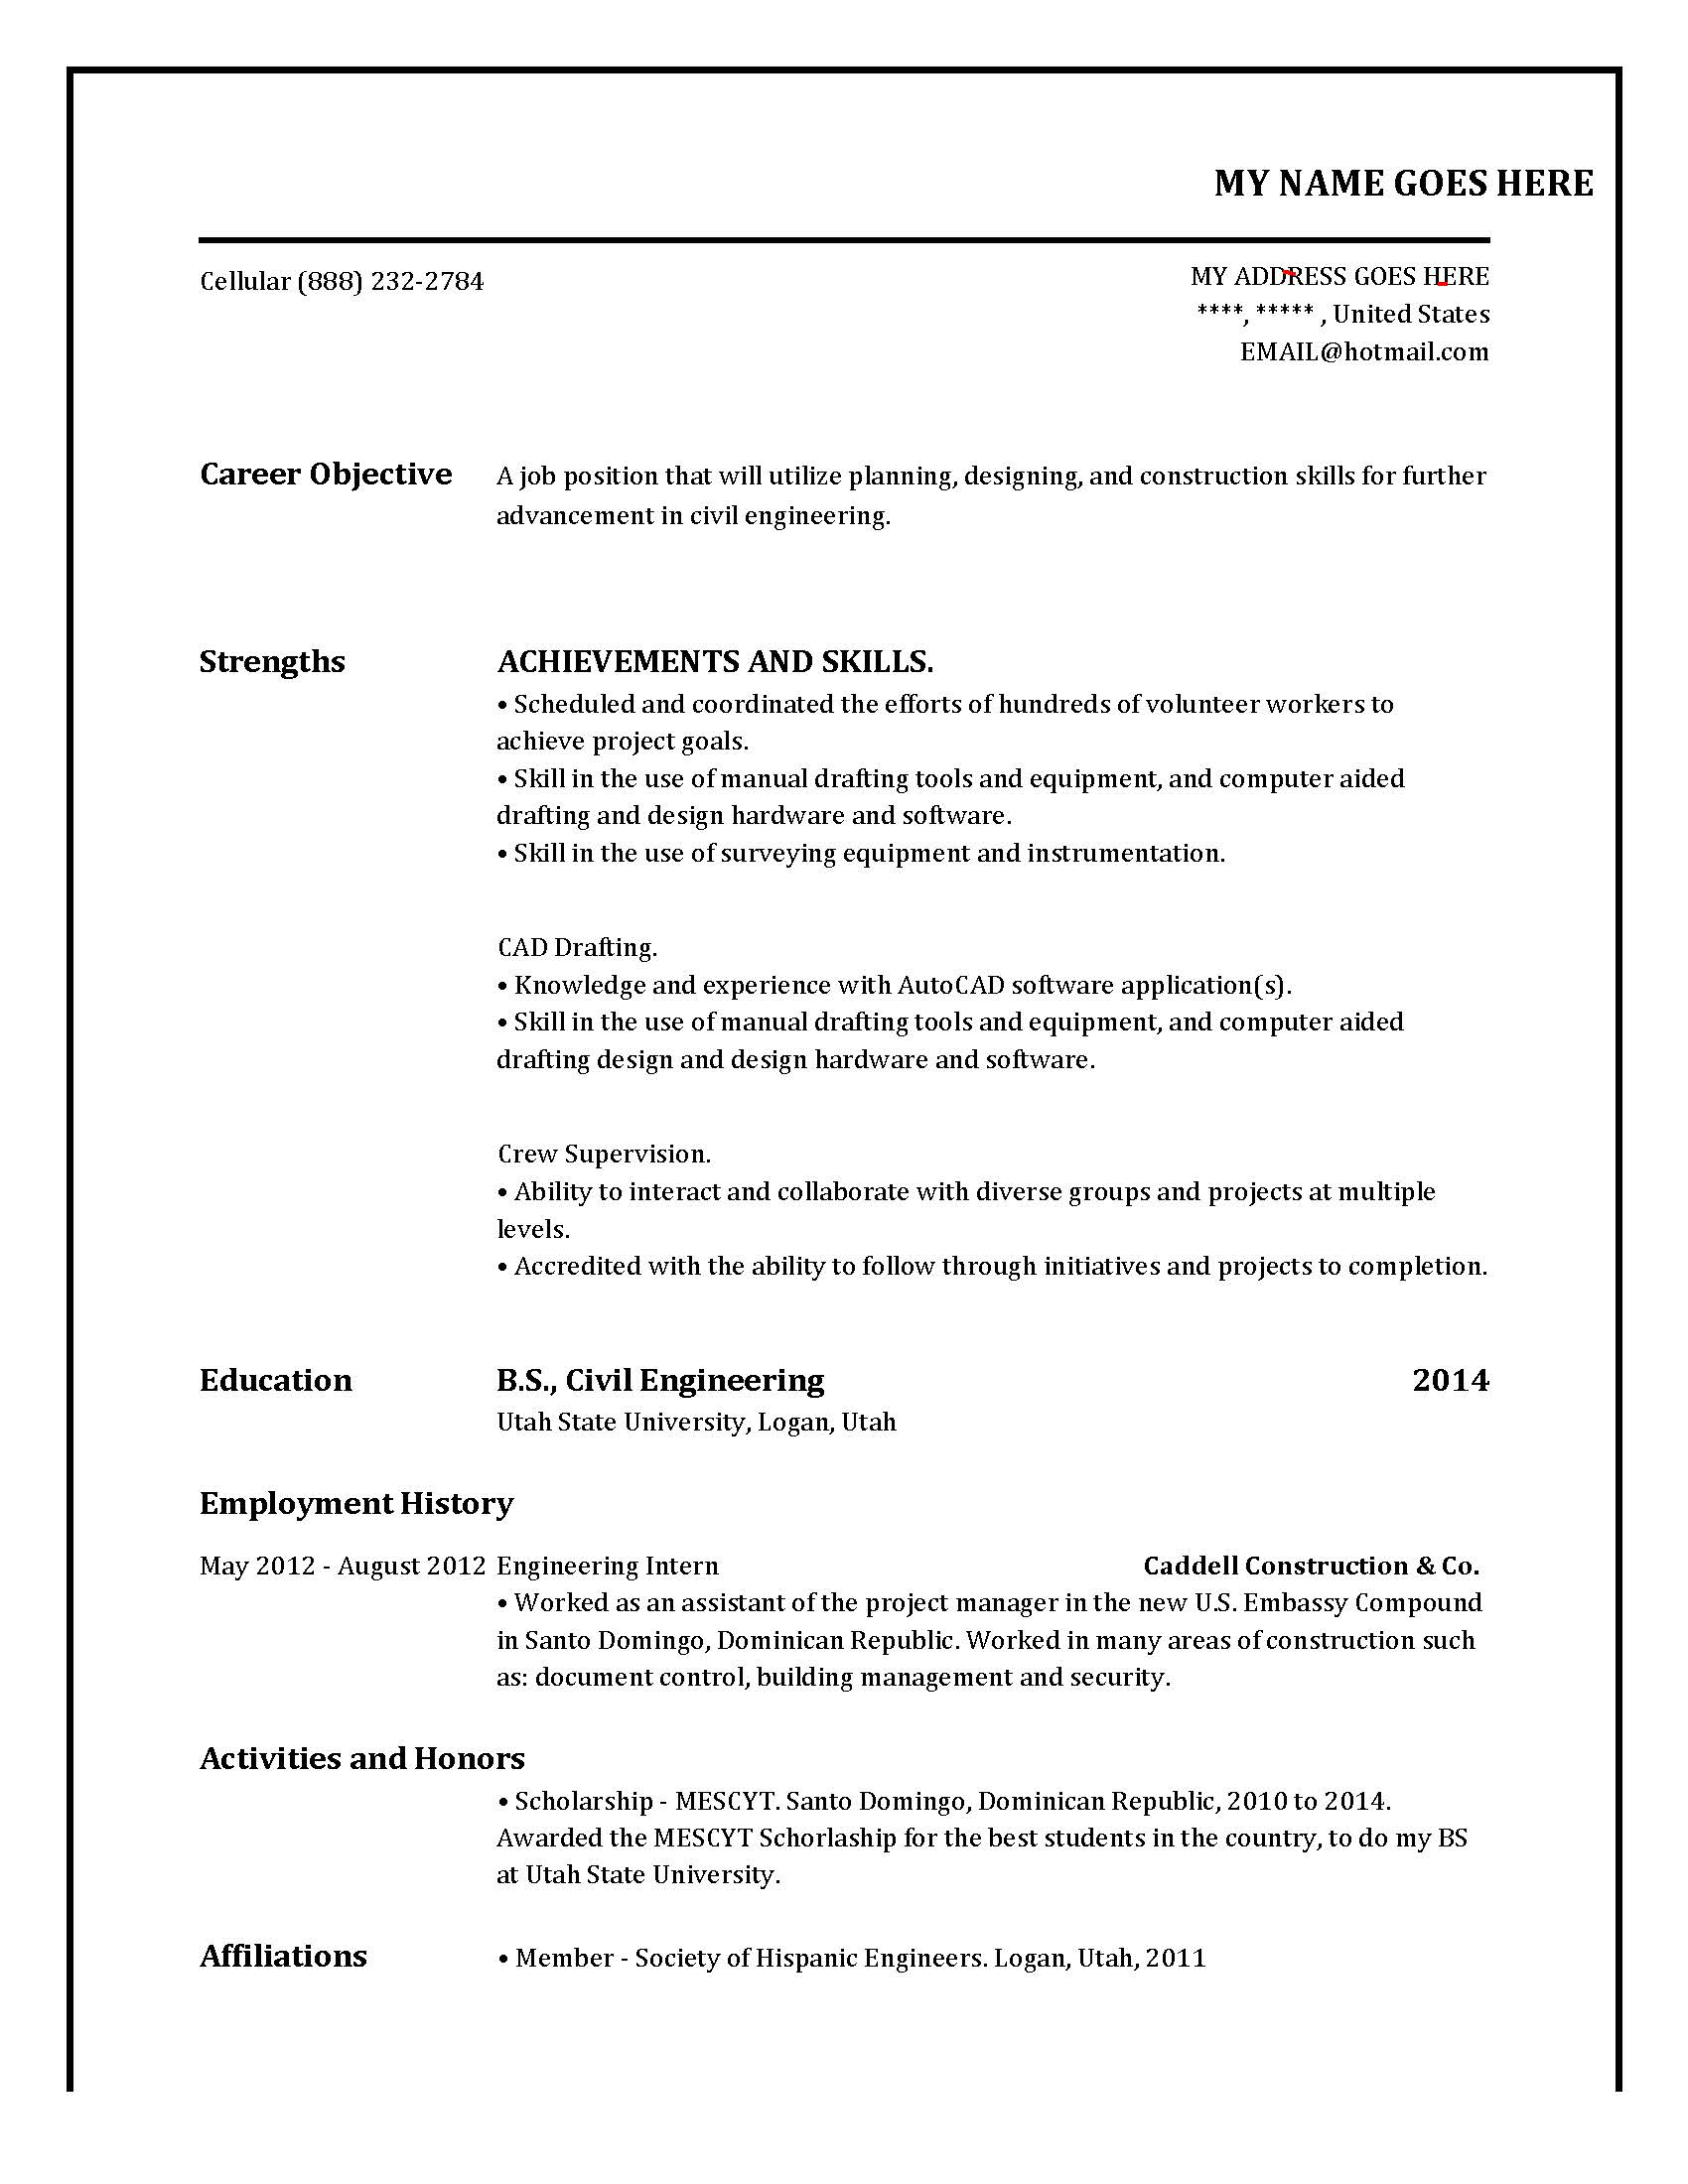 Teaching Resume Template -Sample, Example